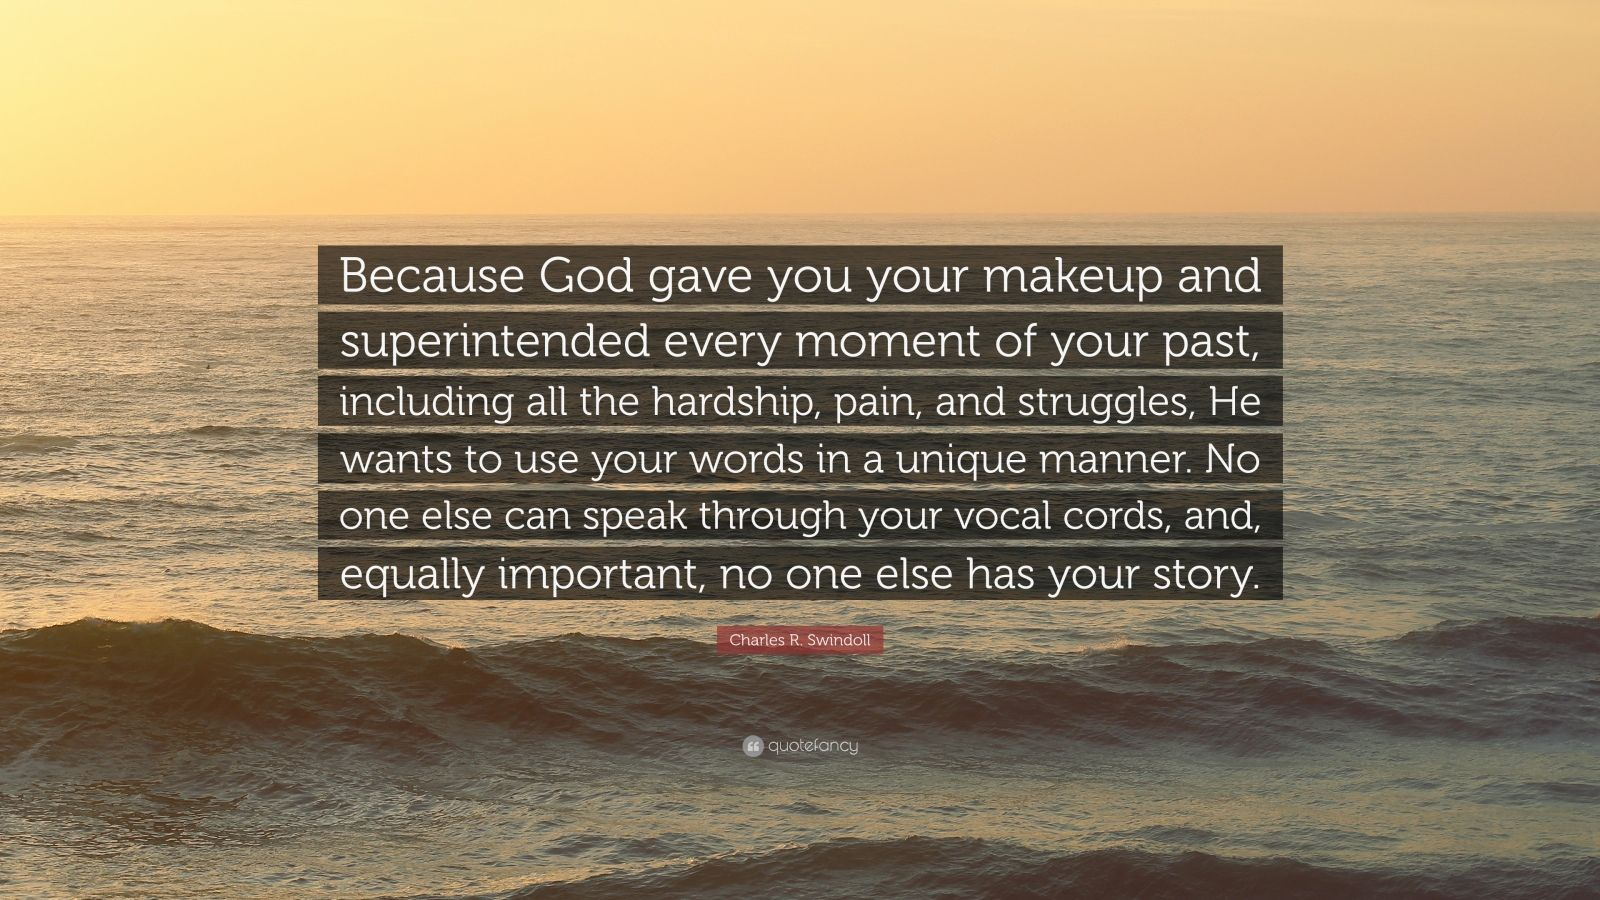 """Charles R. Swindoll Quote: """"Because God gave you your makeup and superintended every moment of your past, including all the hardship, pain, and struggles, He wants to use your words in a unique manner. No one else can speak through your vocal cords, and, equally important, no one else has your story."""""""